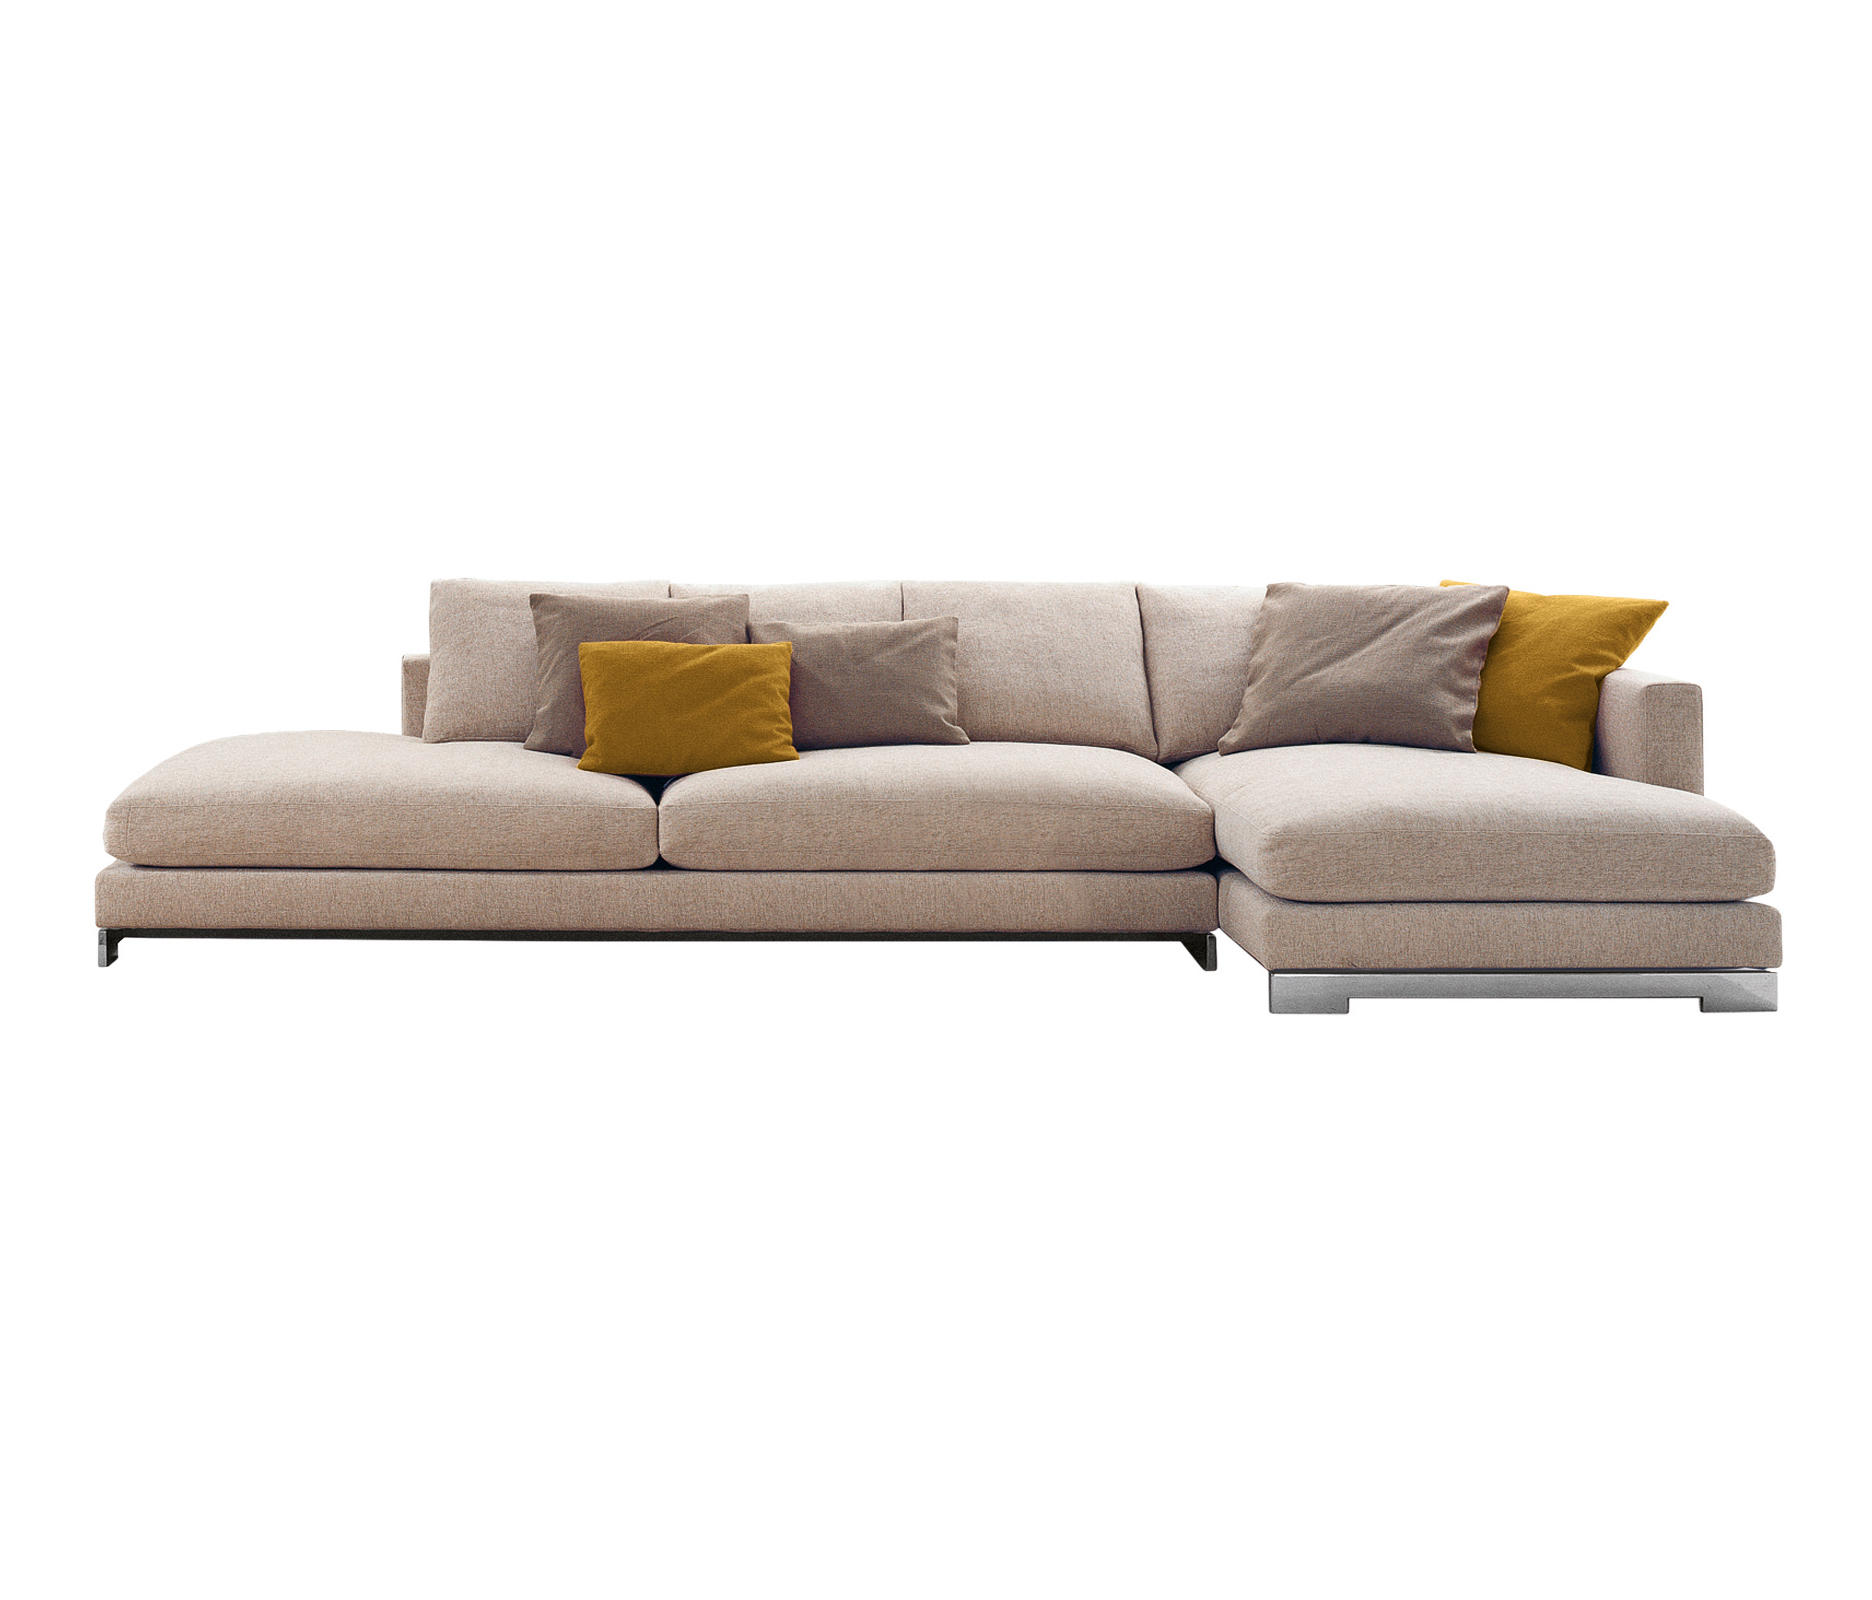 Reversi modular sofa systems from molteni c architonic for Sofa tiefe sitzfl che